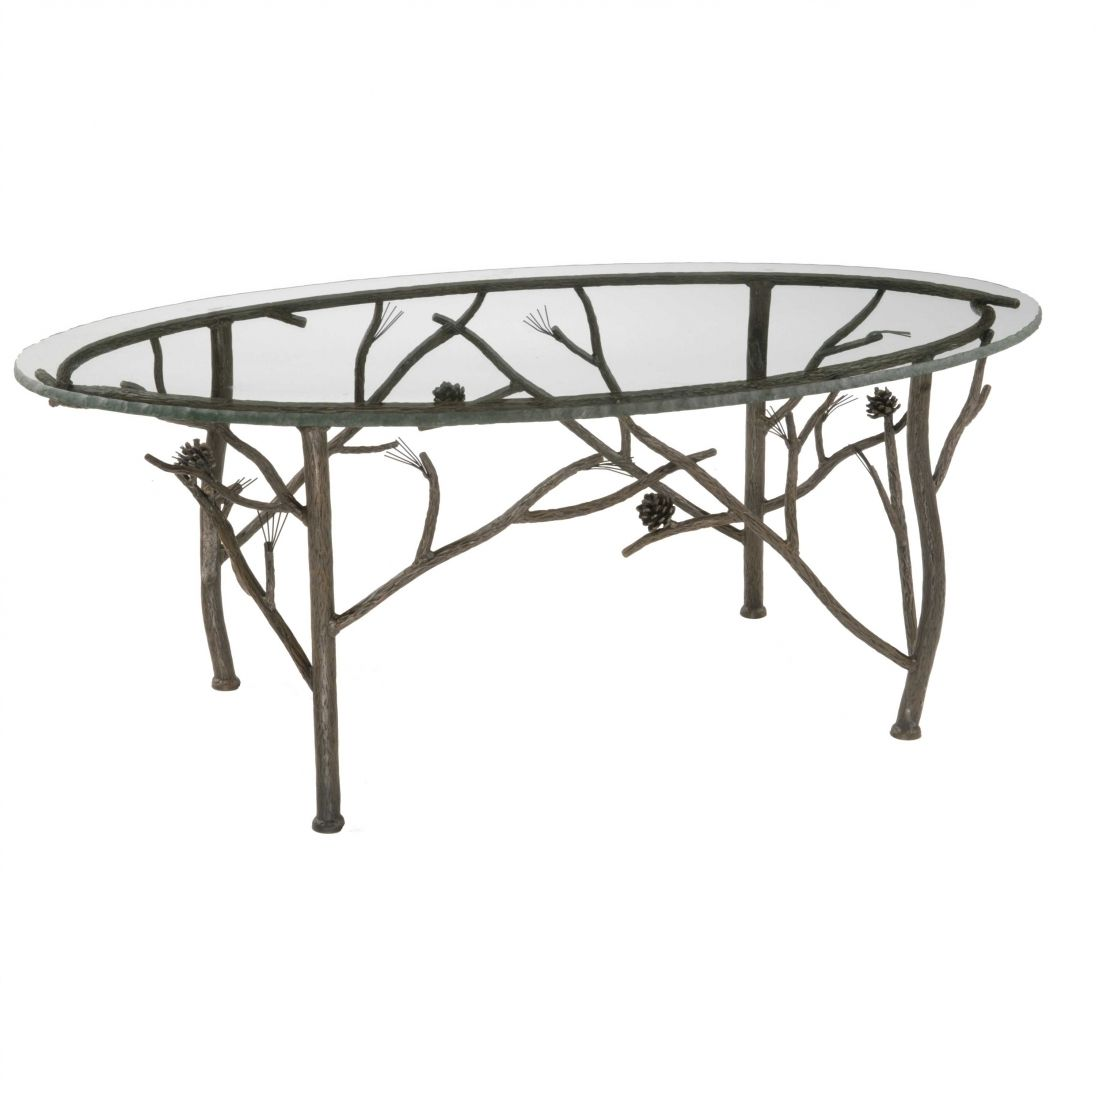 Wrought Iron Gl End Tables Living Room Furniture Sets Check More At